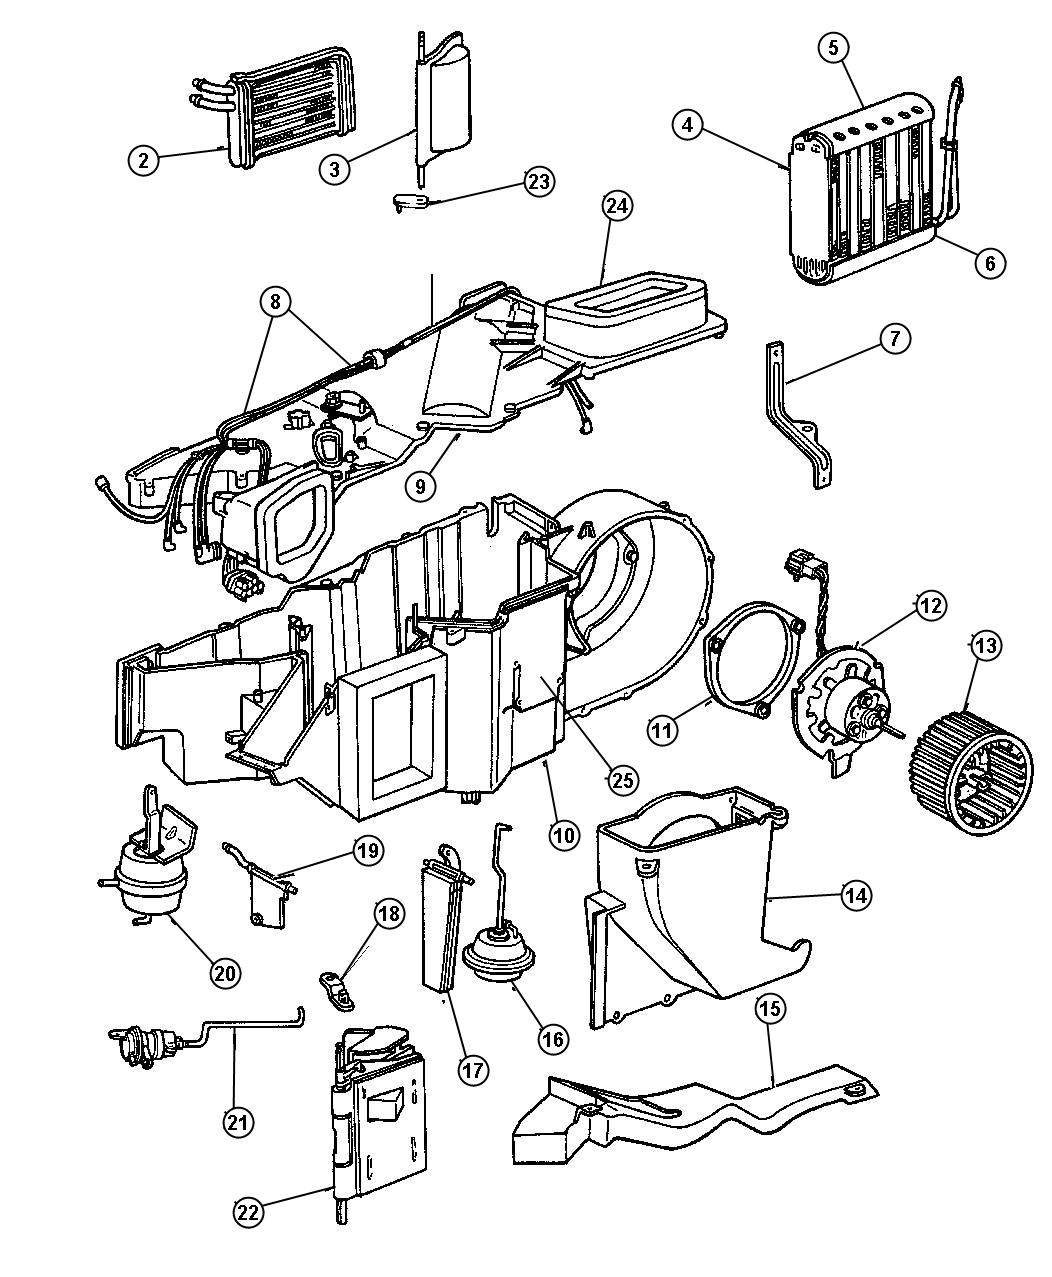 Part Diagram 2000 Dodge Durango Heater Core